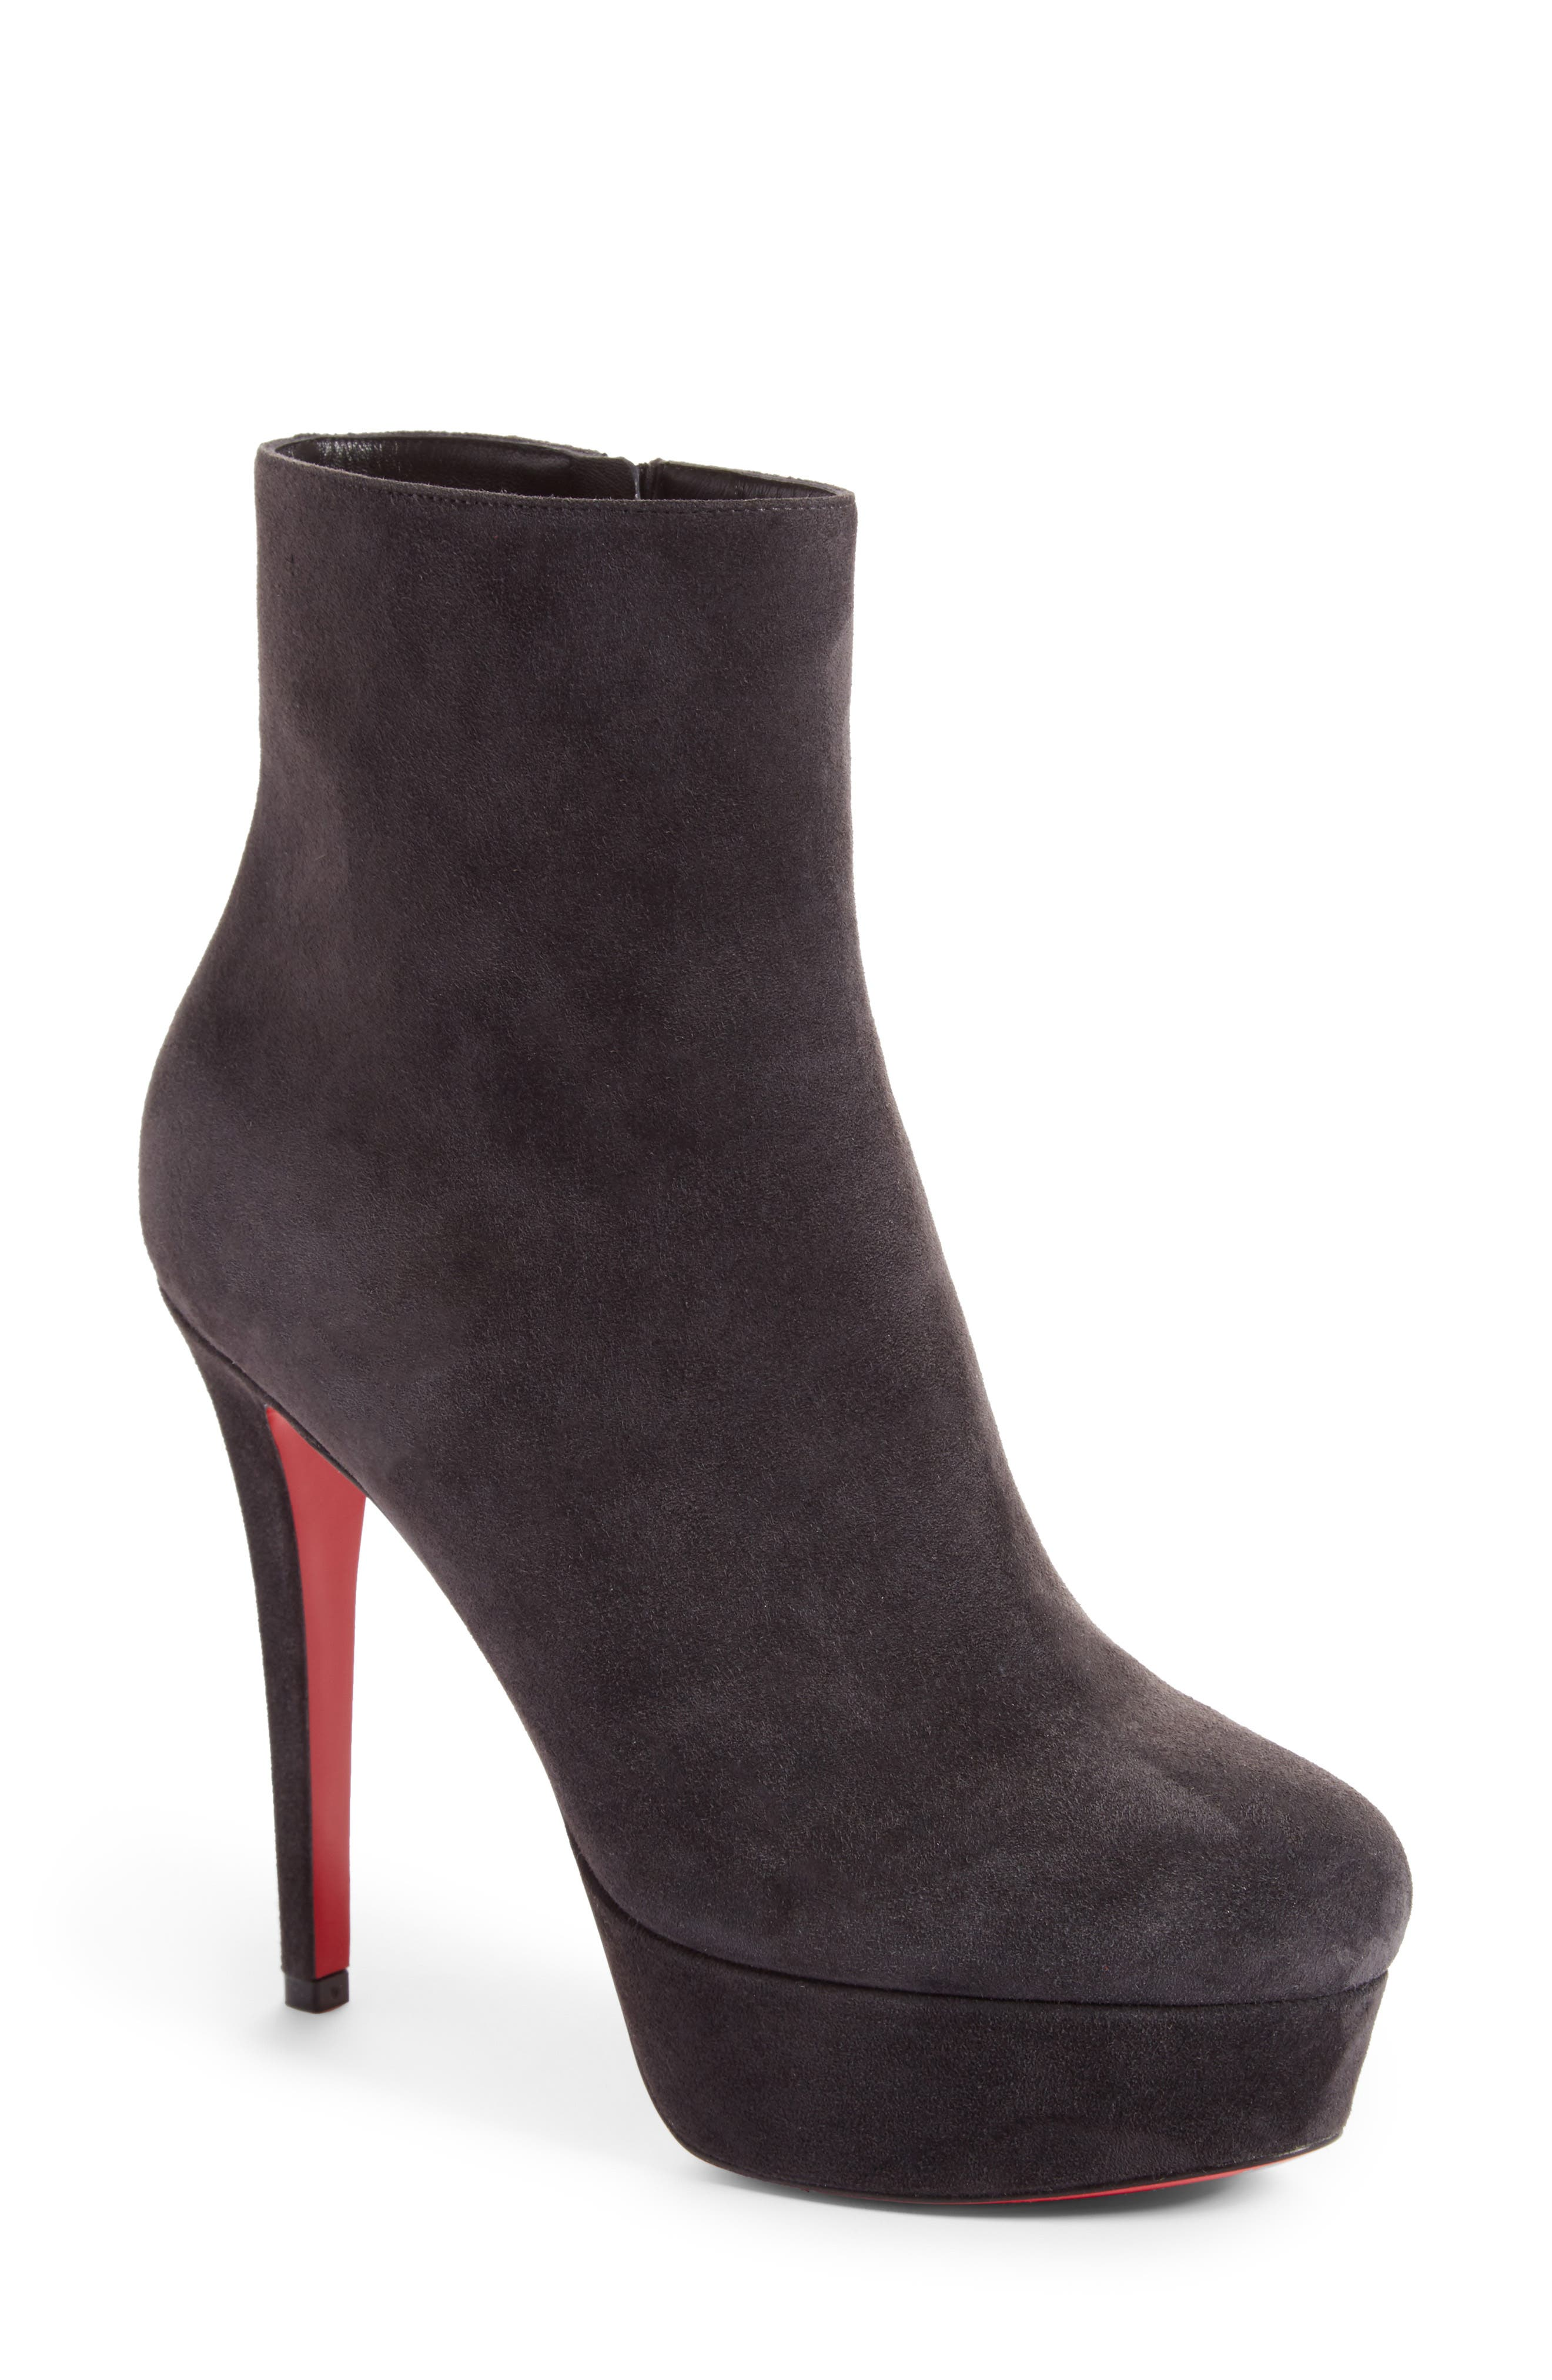 Alternate Image 1 Selected - Christian Louboutin 'Bianca' Platform Bootie